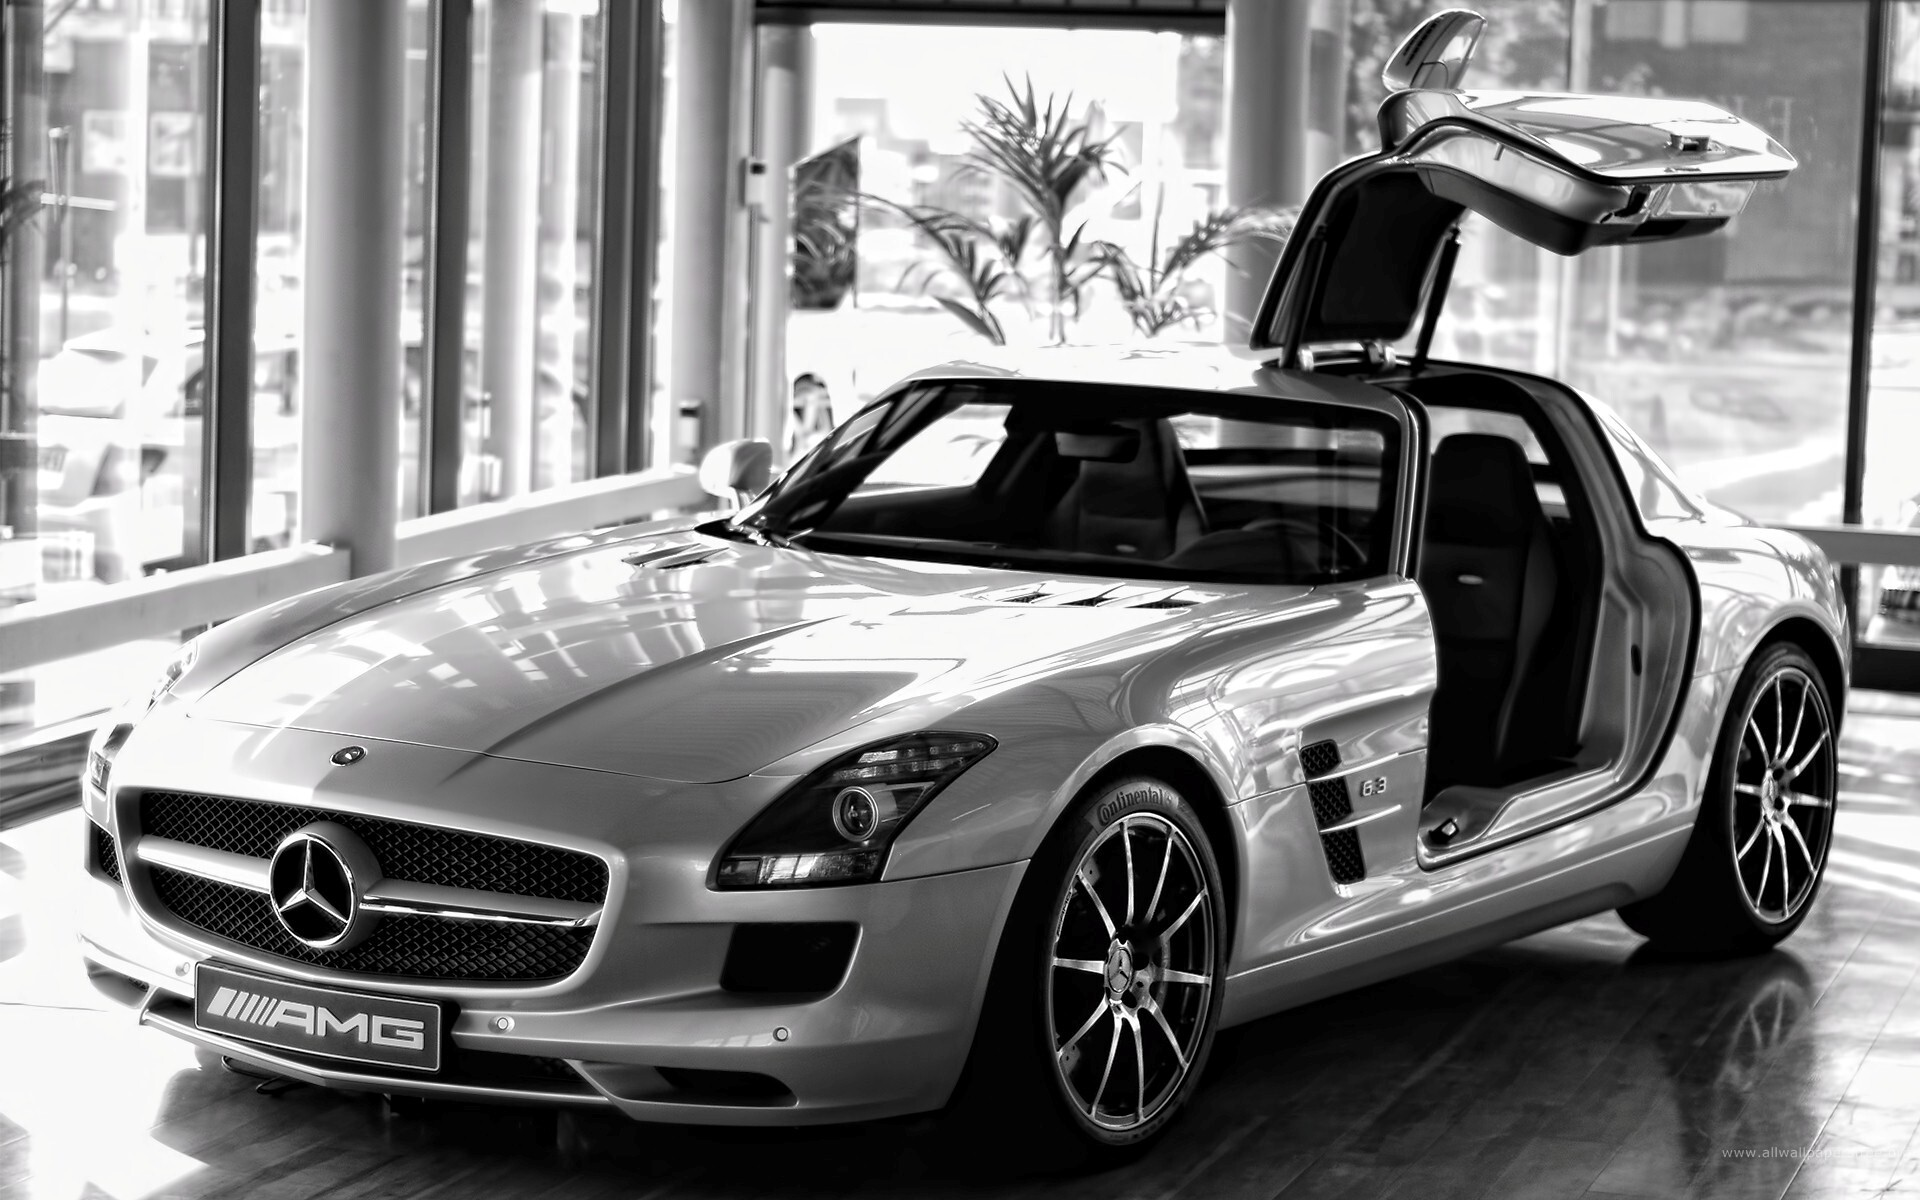 mercedes benz hd wallpapers images pictures photos download